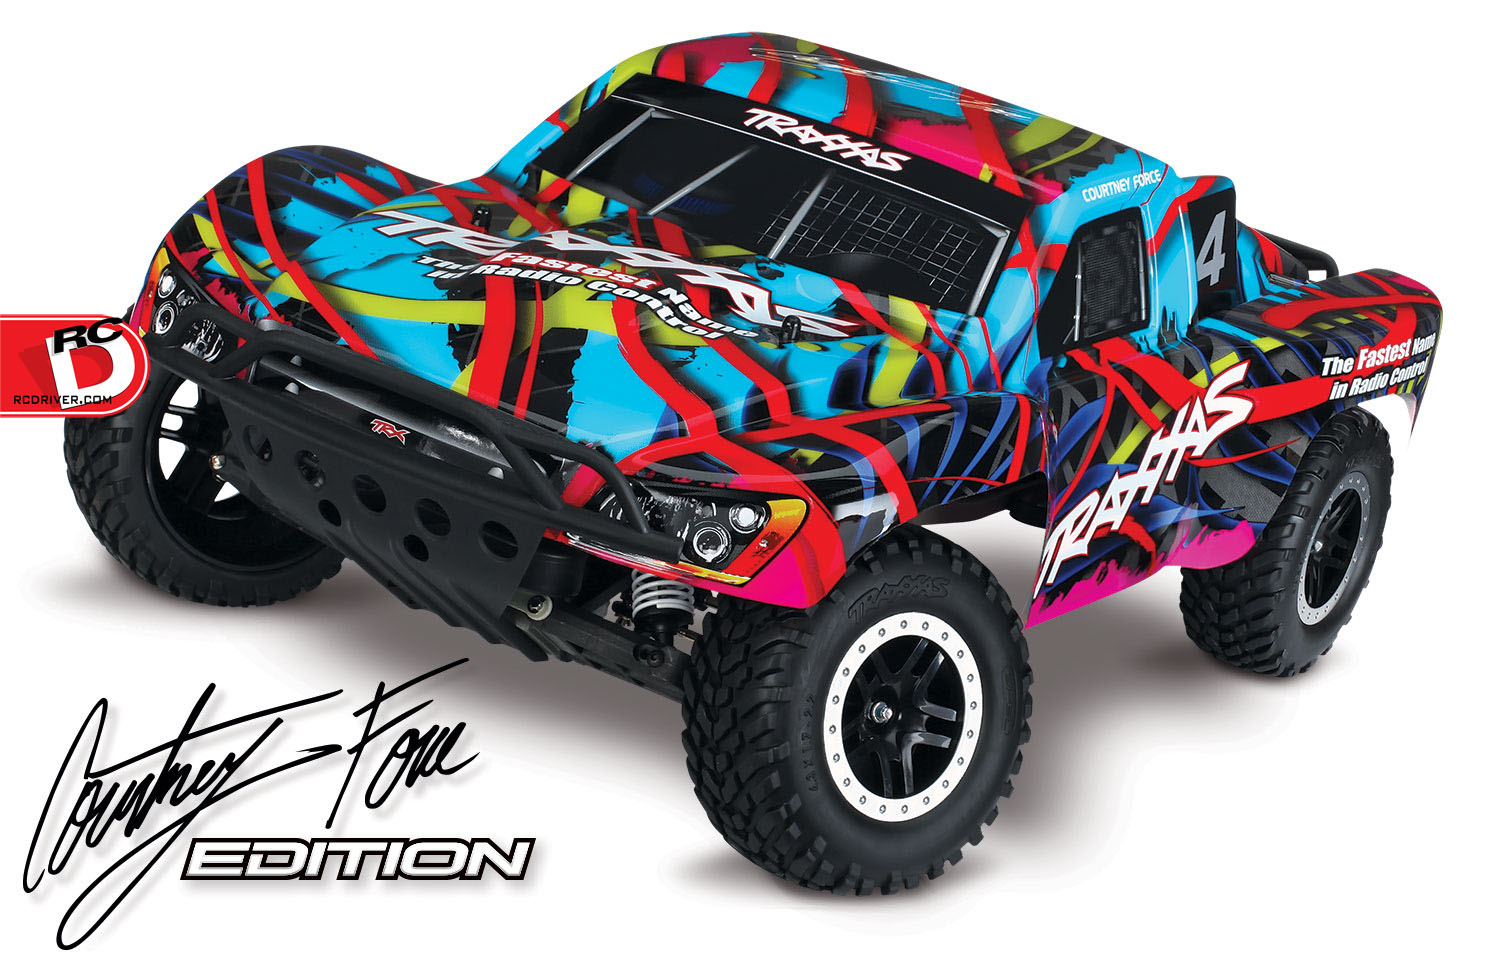 Traxxas - Pink and Courtney Force Editions of the Slash, Stampede, Bandit and Rustler_1 copy